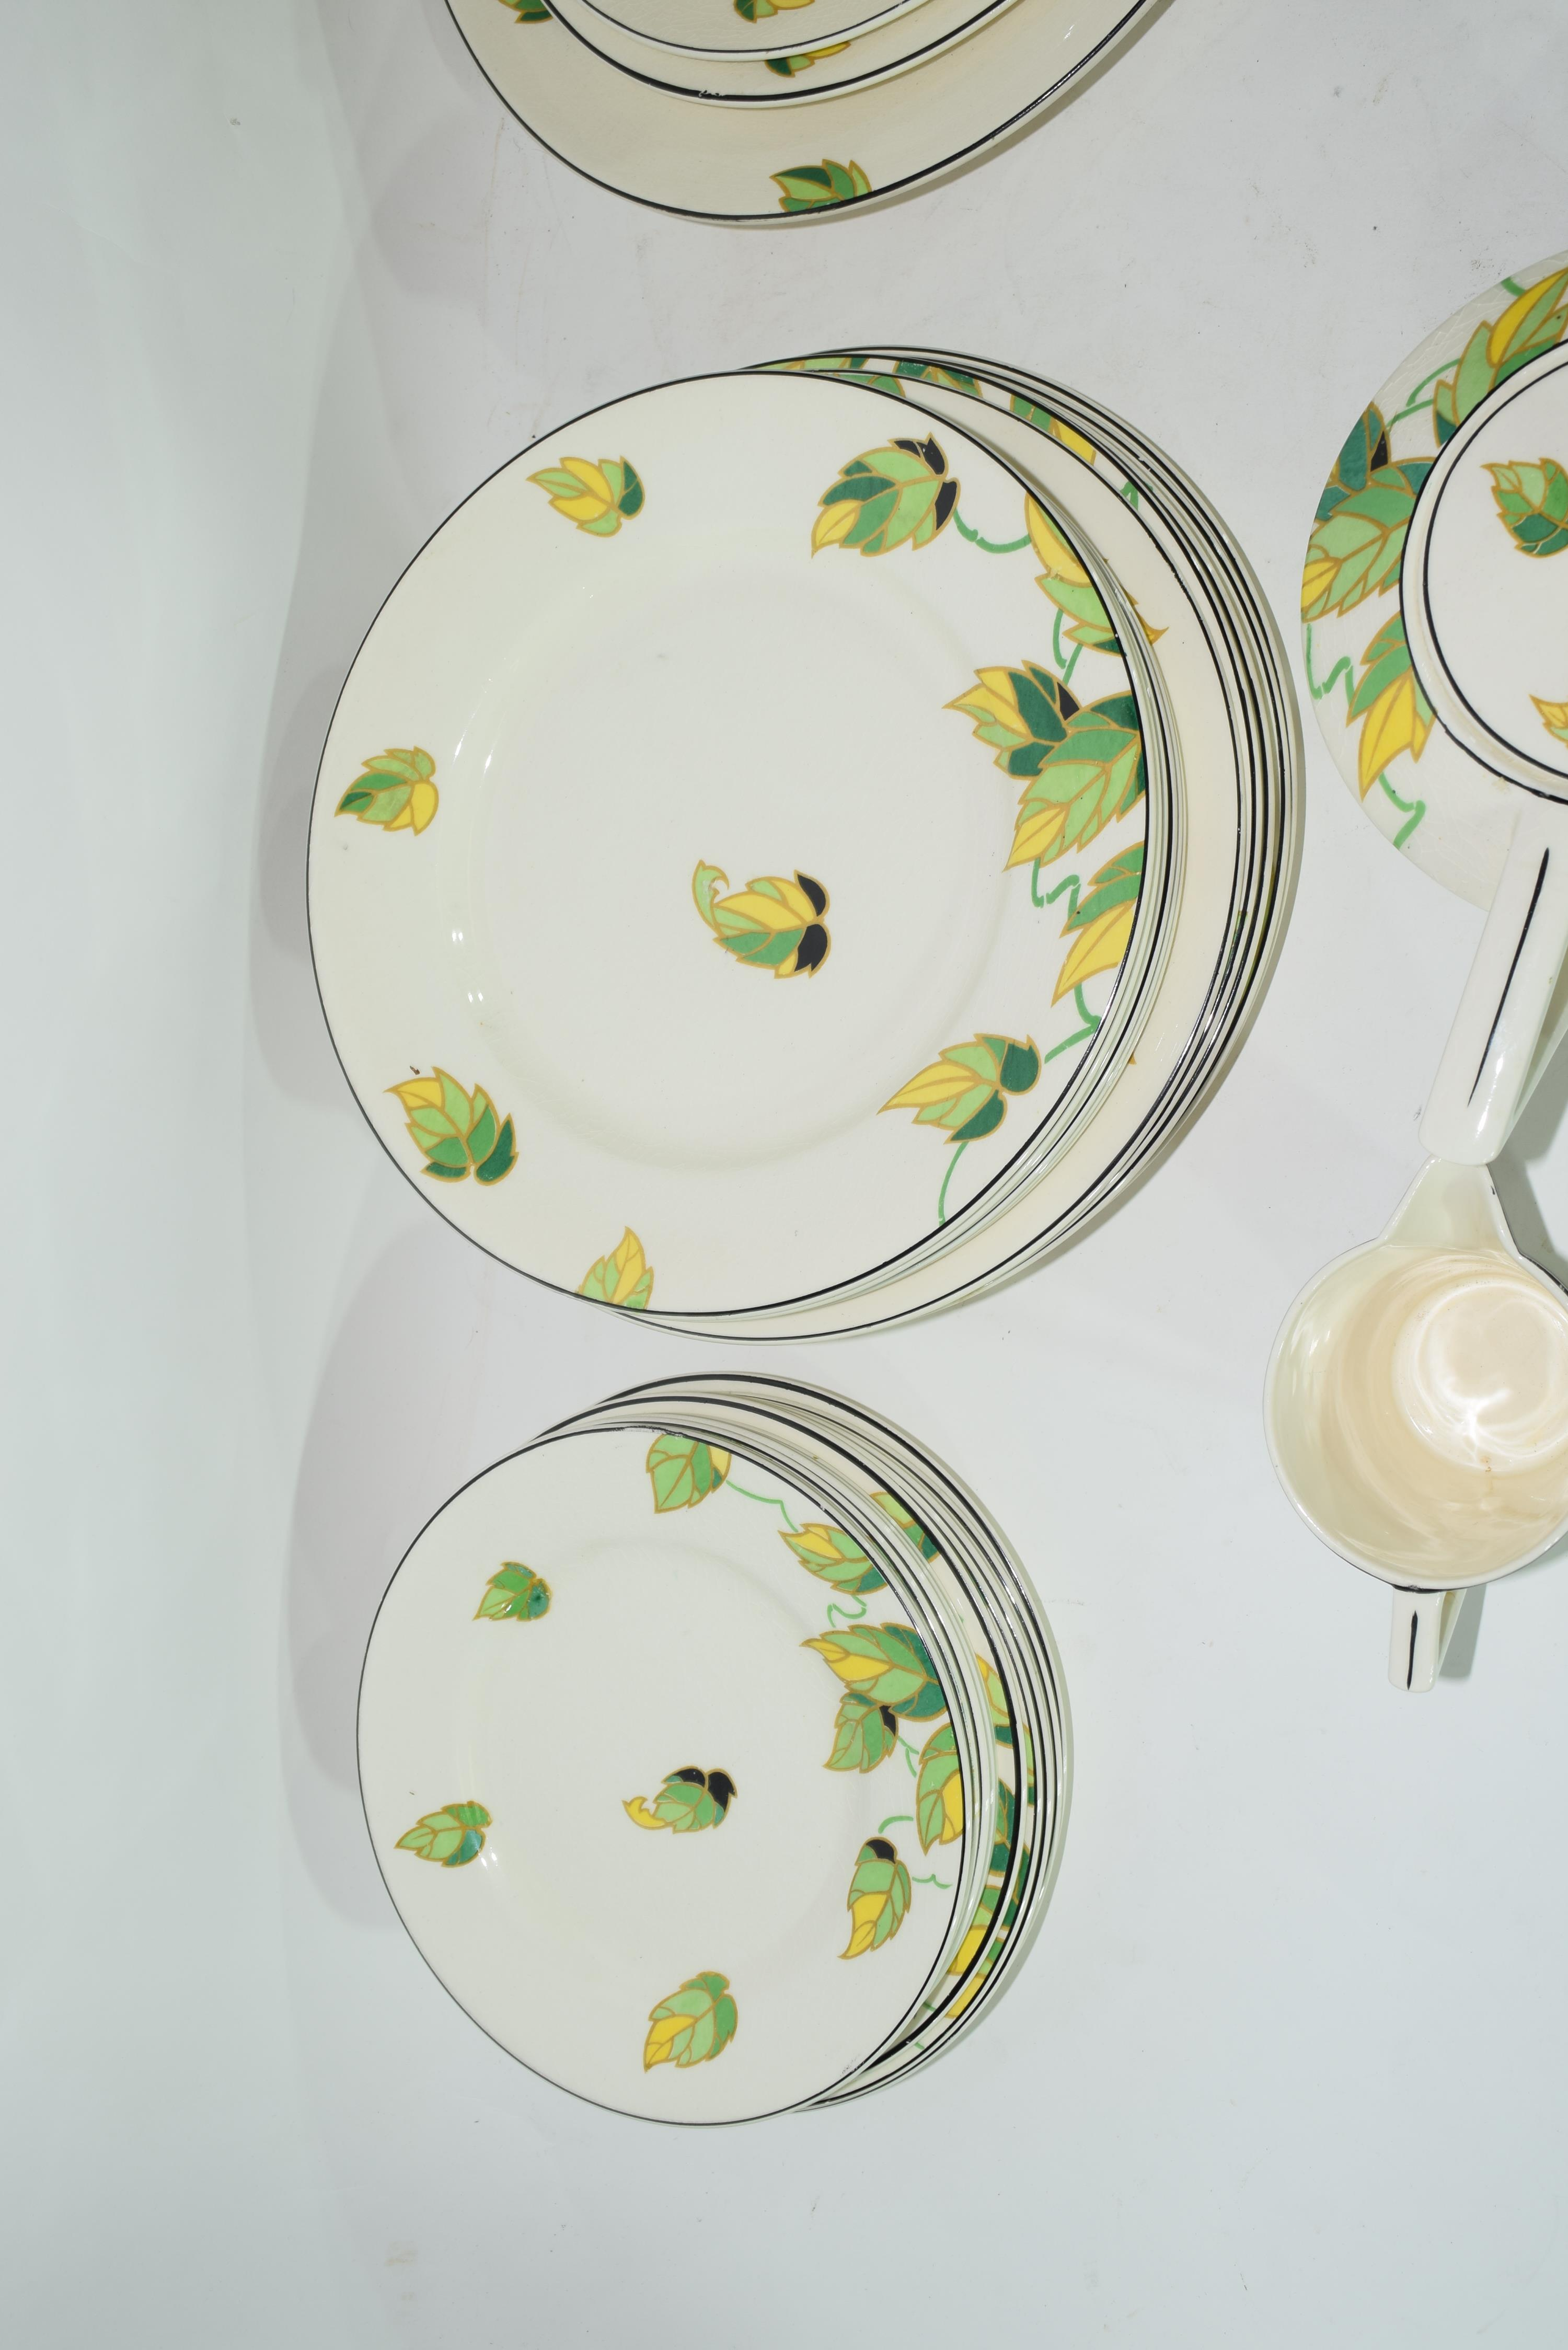 Quantity of Wedgwood dinner wares in Art Deco style - Image 7 of 7